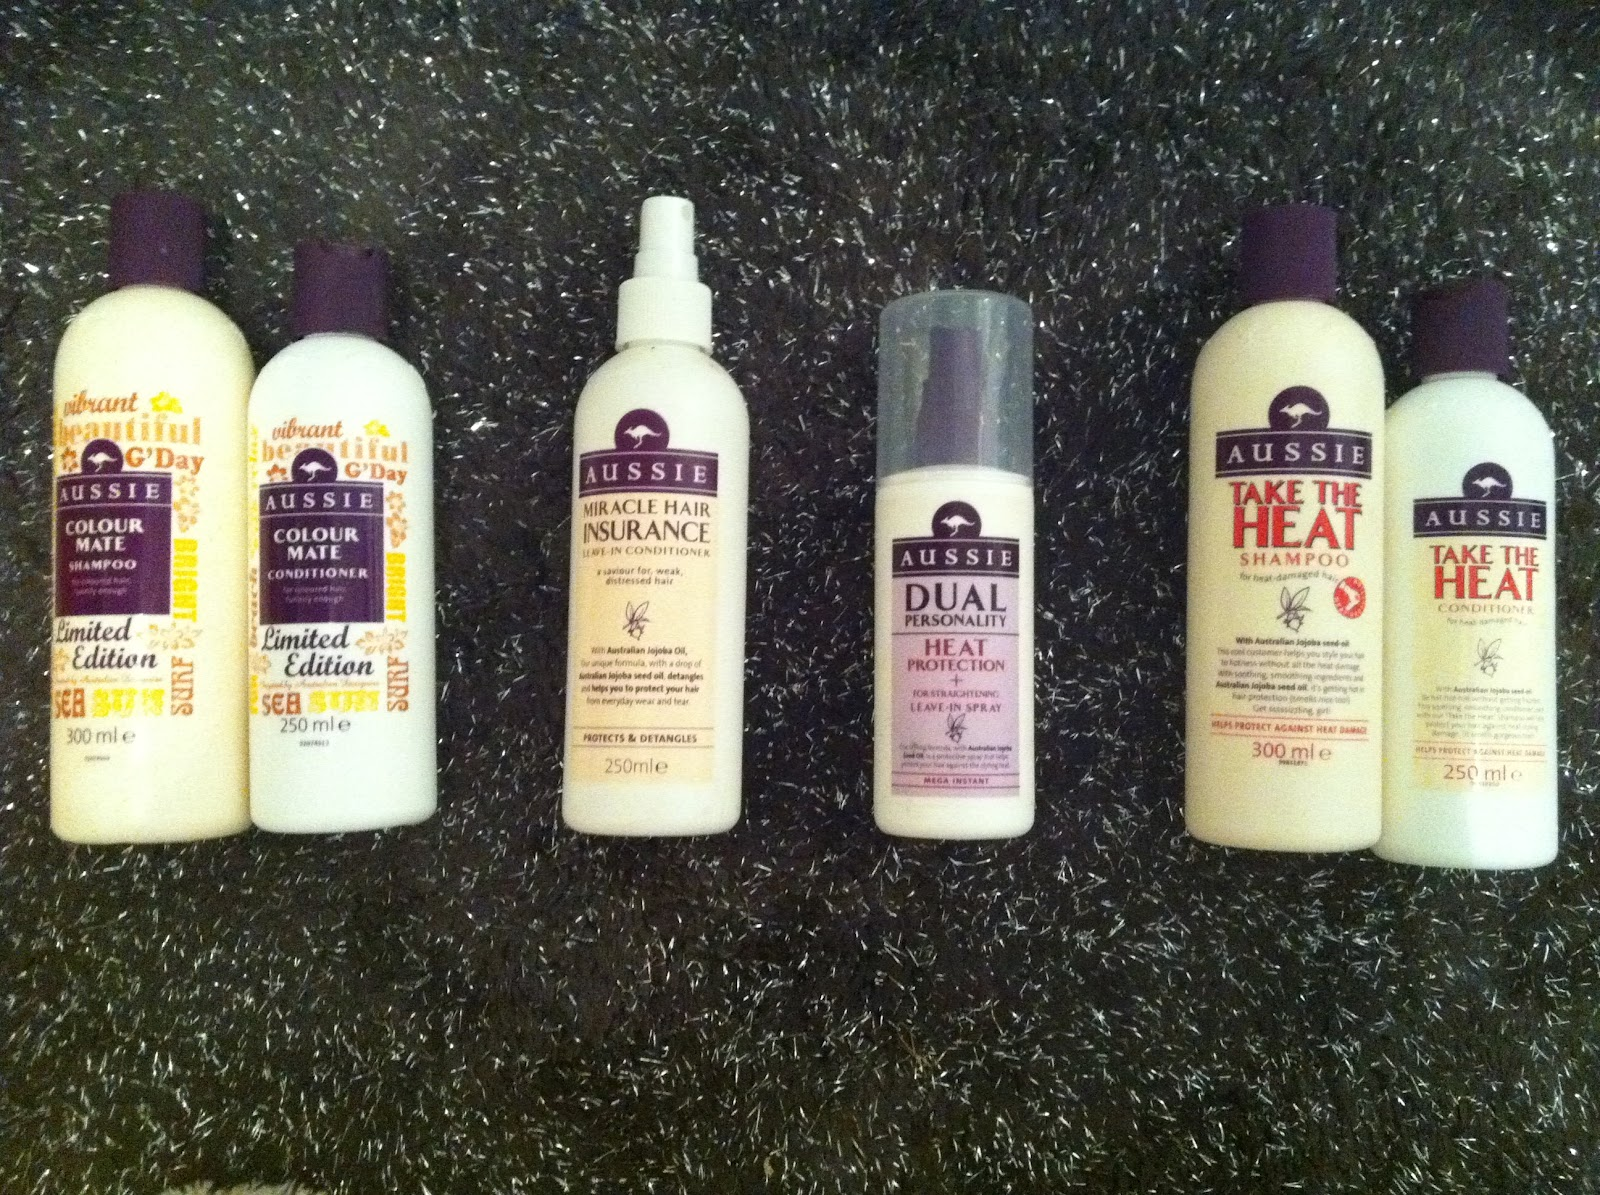 Secrets Of A Shopaholic Aussie Hair Products Review